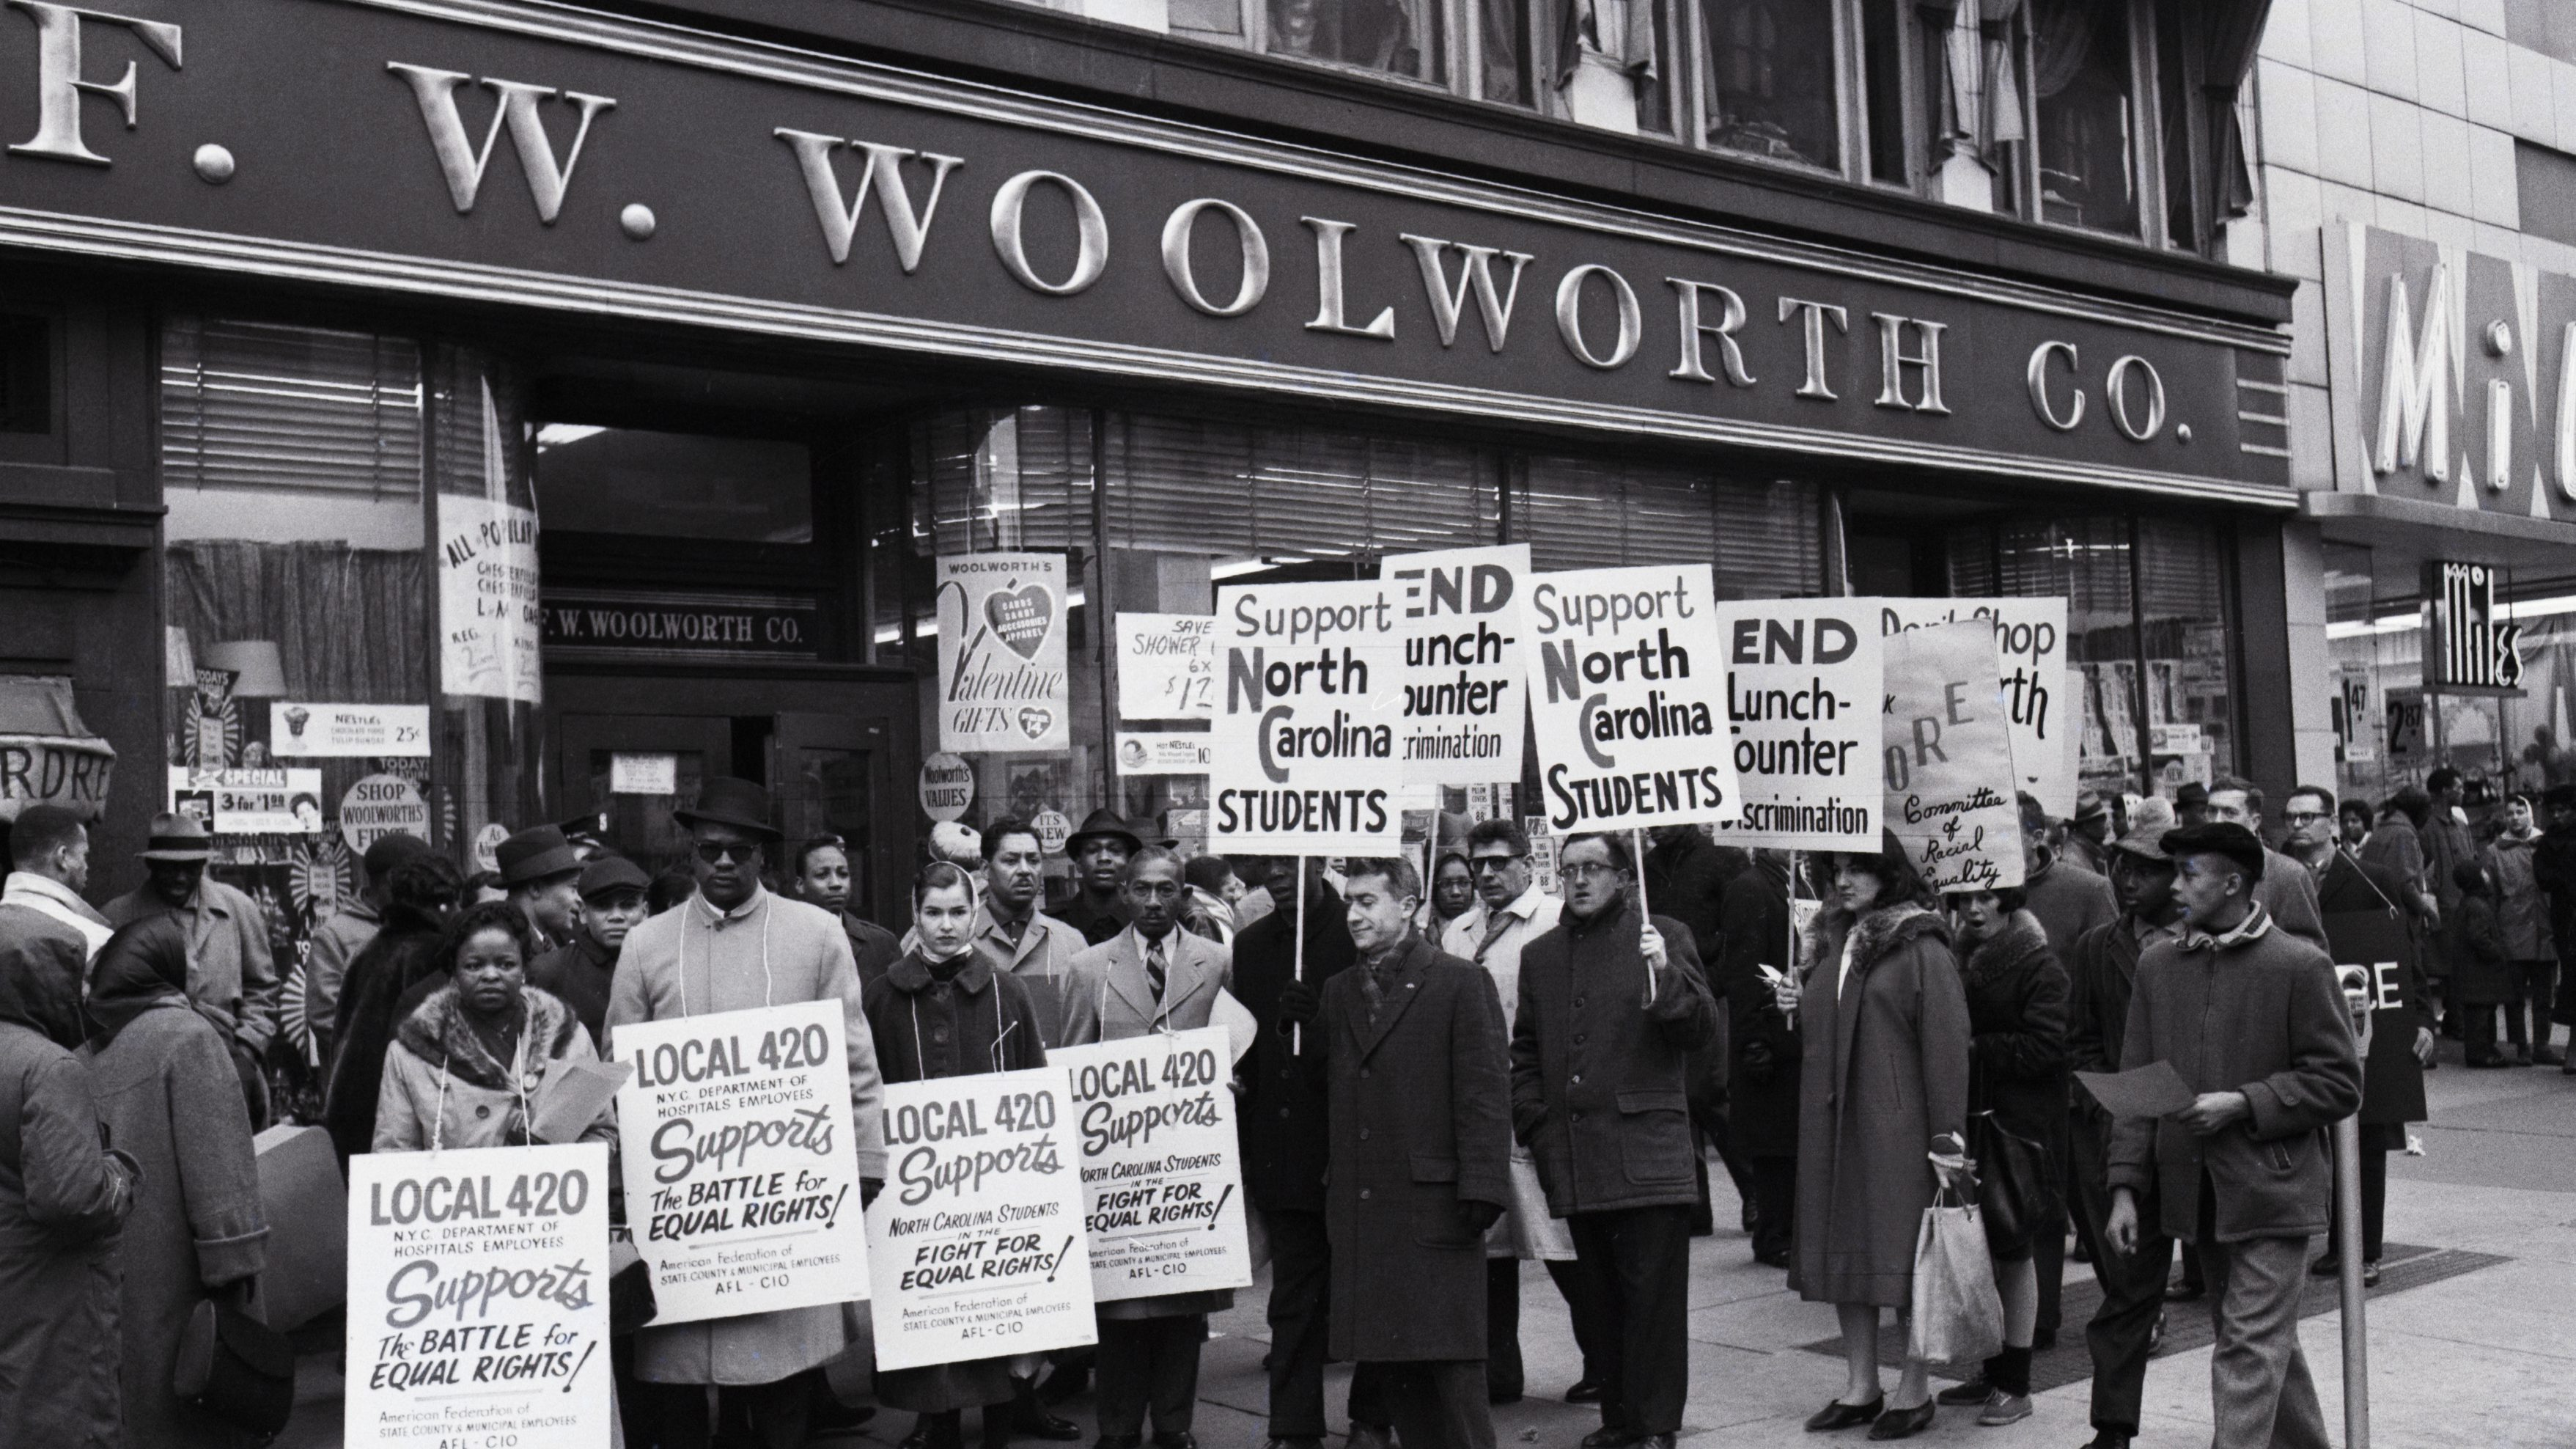 Protesters in Front Of Woolworth in Harlem